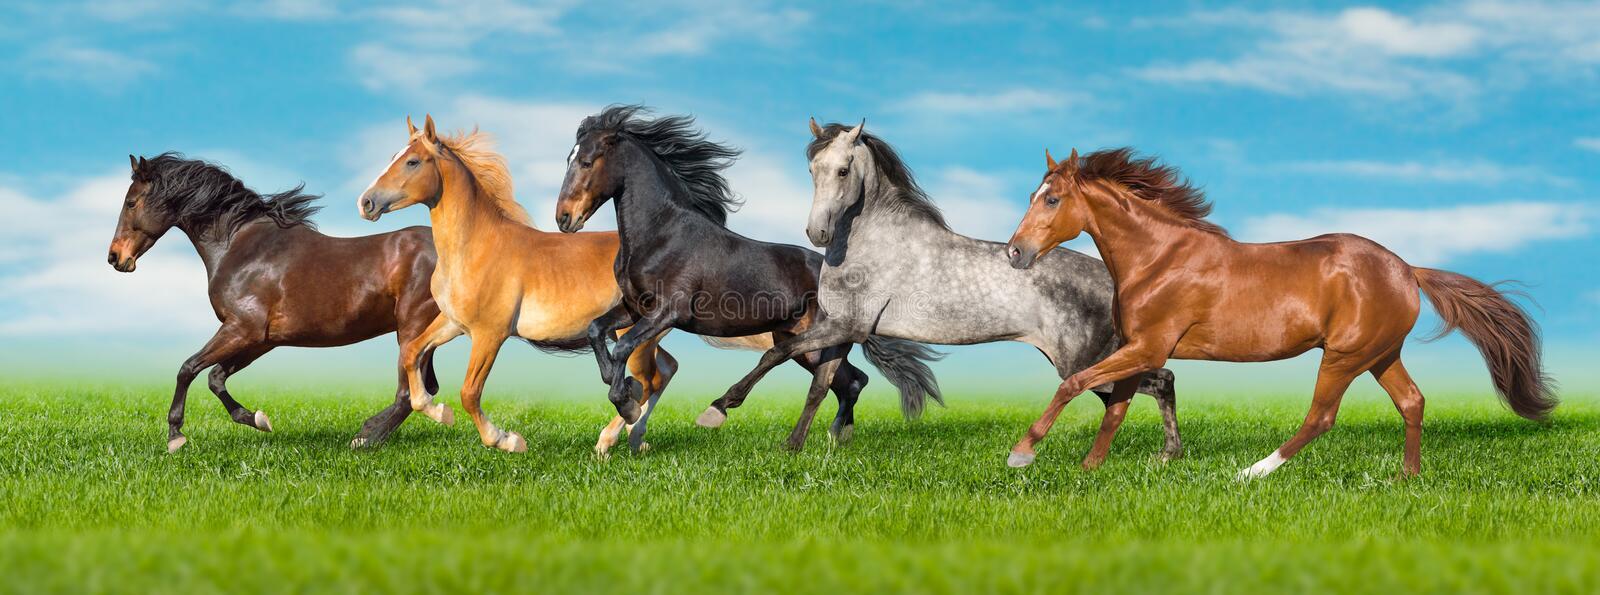 Horses run fast on field. Horses free run gallop i green field with blue sky behind royalty free stock photography